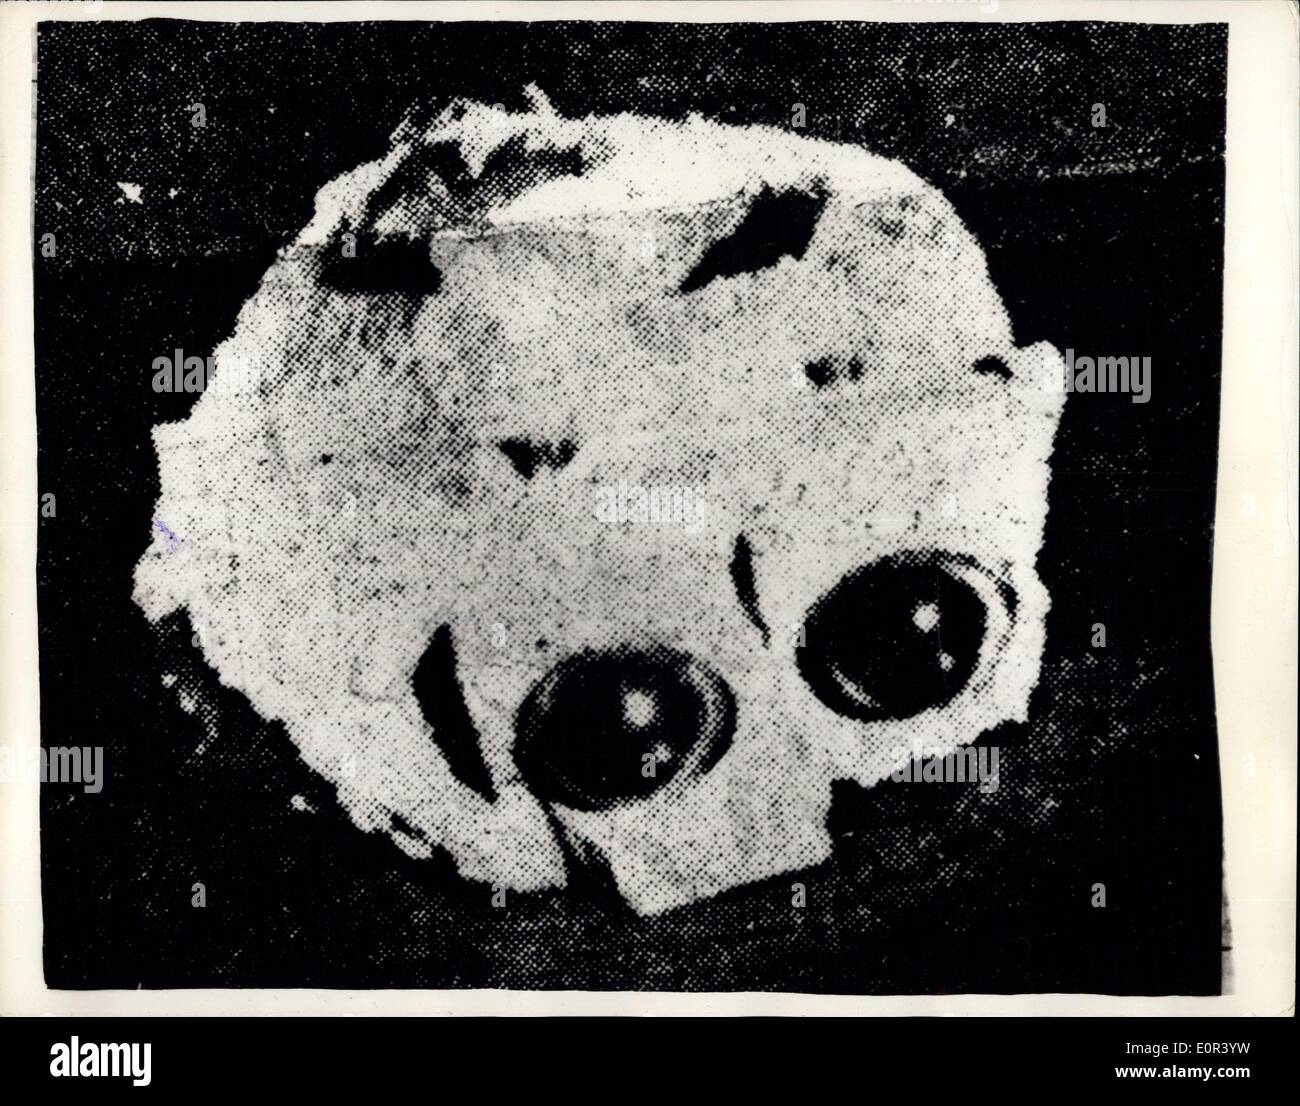 Nov. 12, 1957 - Mysterious Object Falls From The Skies Into An Alexandria School Yard: A small mysterious flaming object fell from the skies - and landed in the playground of the Salah eldin primary school, at Moharren Bay, Alexandria a few days ago. The object was i the form of a piece of white rubber with two lenses installed in one side-and a hole on the other side-pluse another hole and a lens on the other side. On each of the lenses there was apiece of copper wire - Stock Image